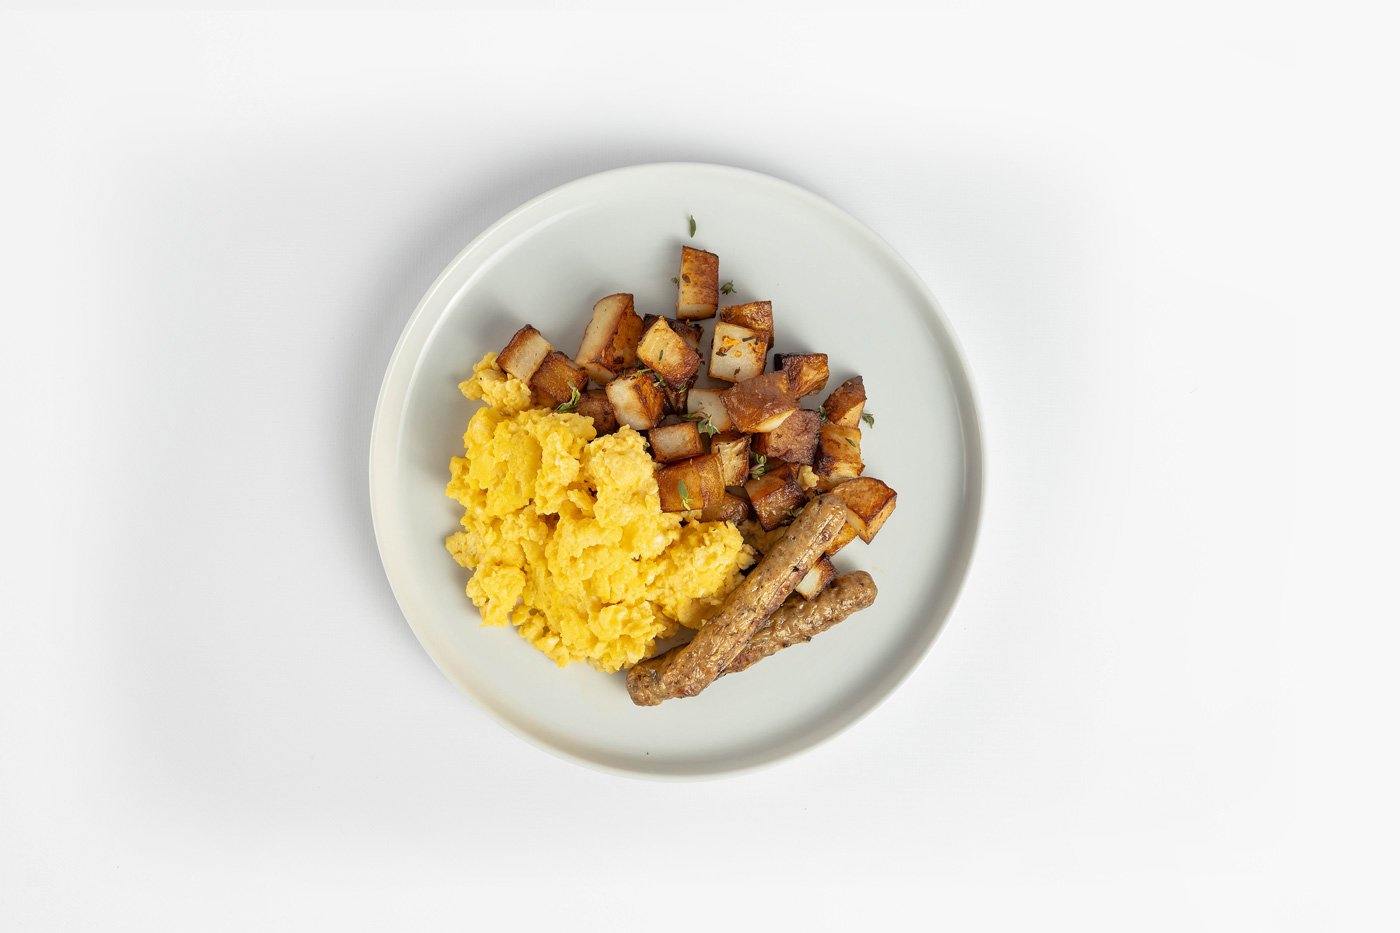 Egg Scramble with Sausage and Potato Breakfast Product Image